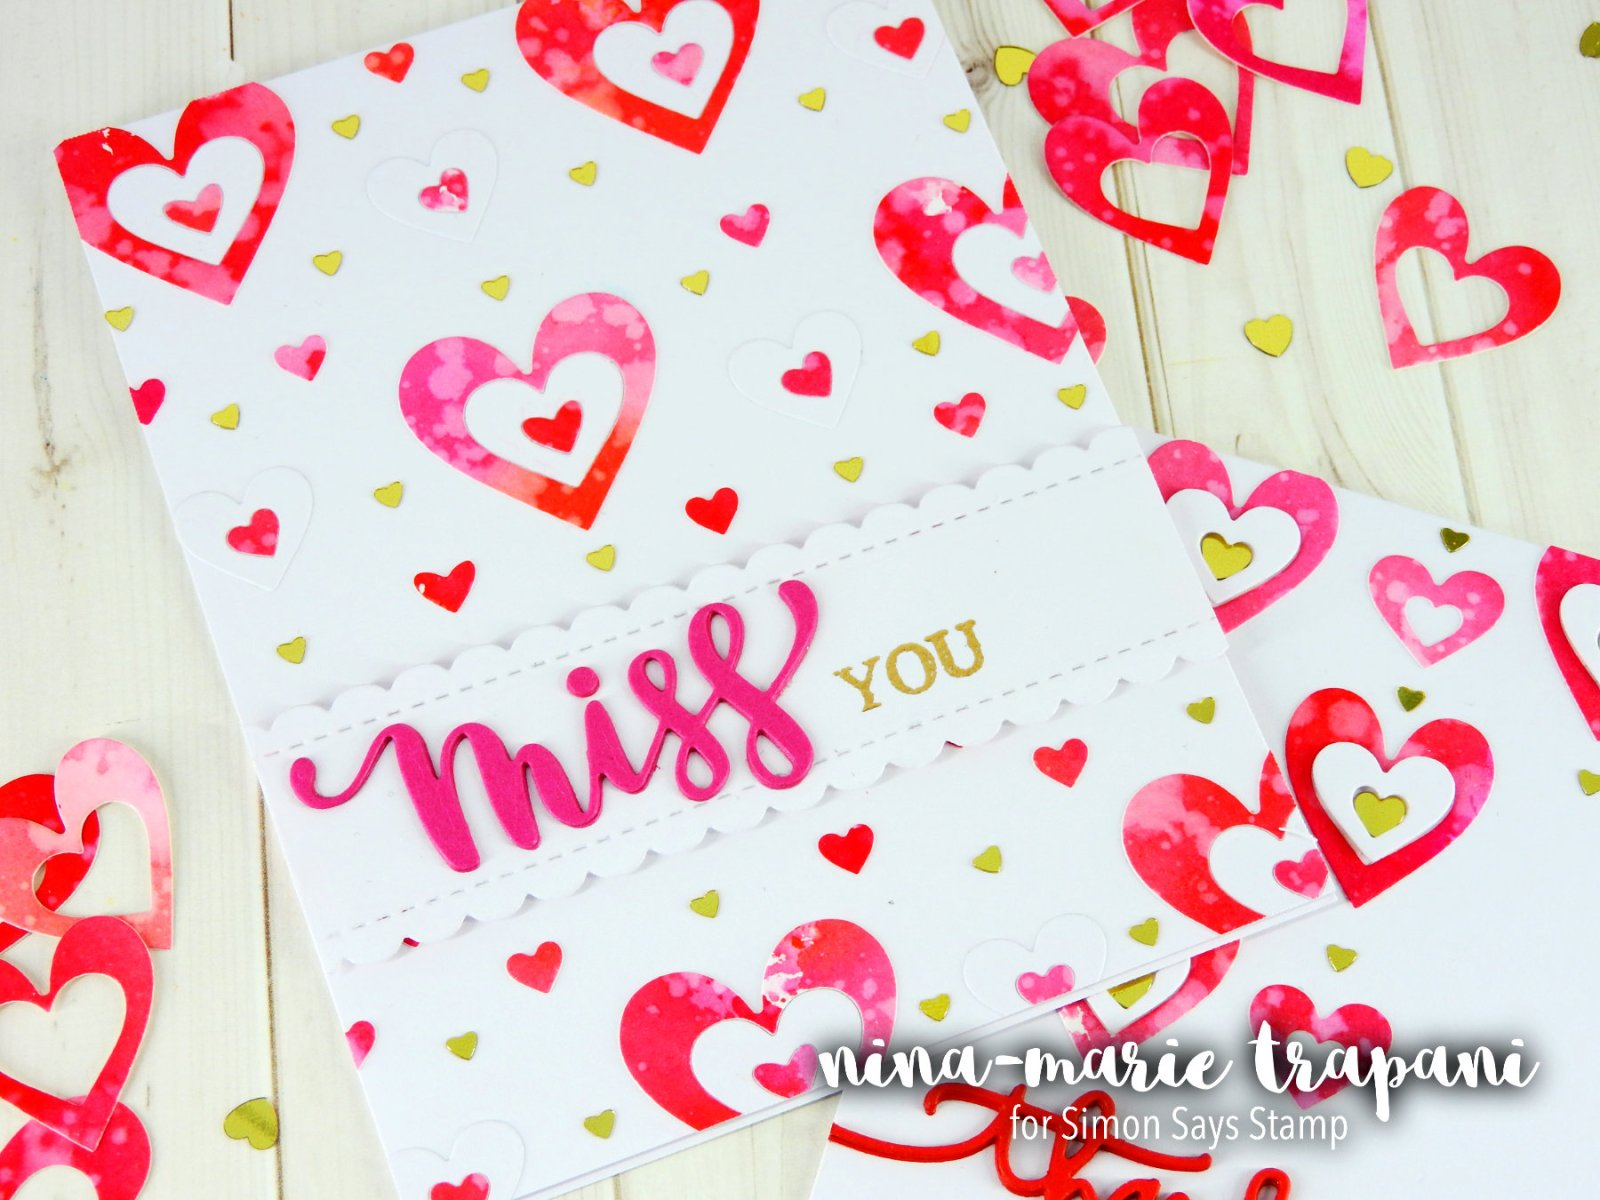 In Lay Die Cutting + Simon Says Stamp Blog Hop Nina-Marie Design